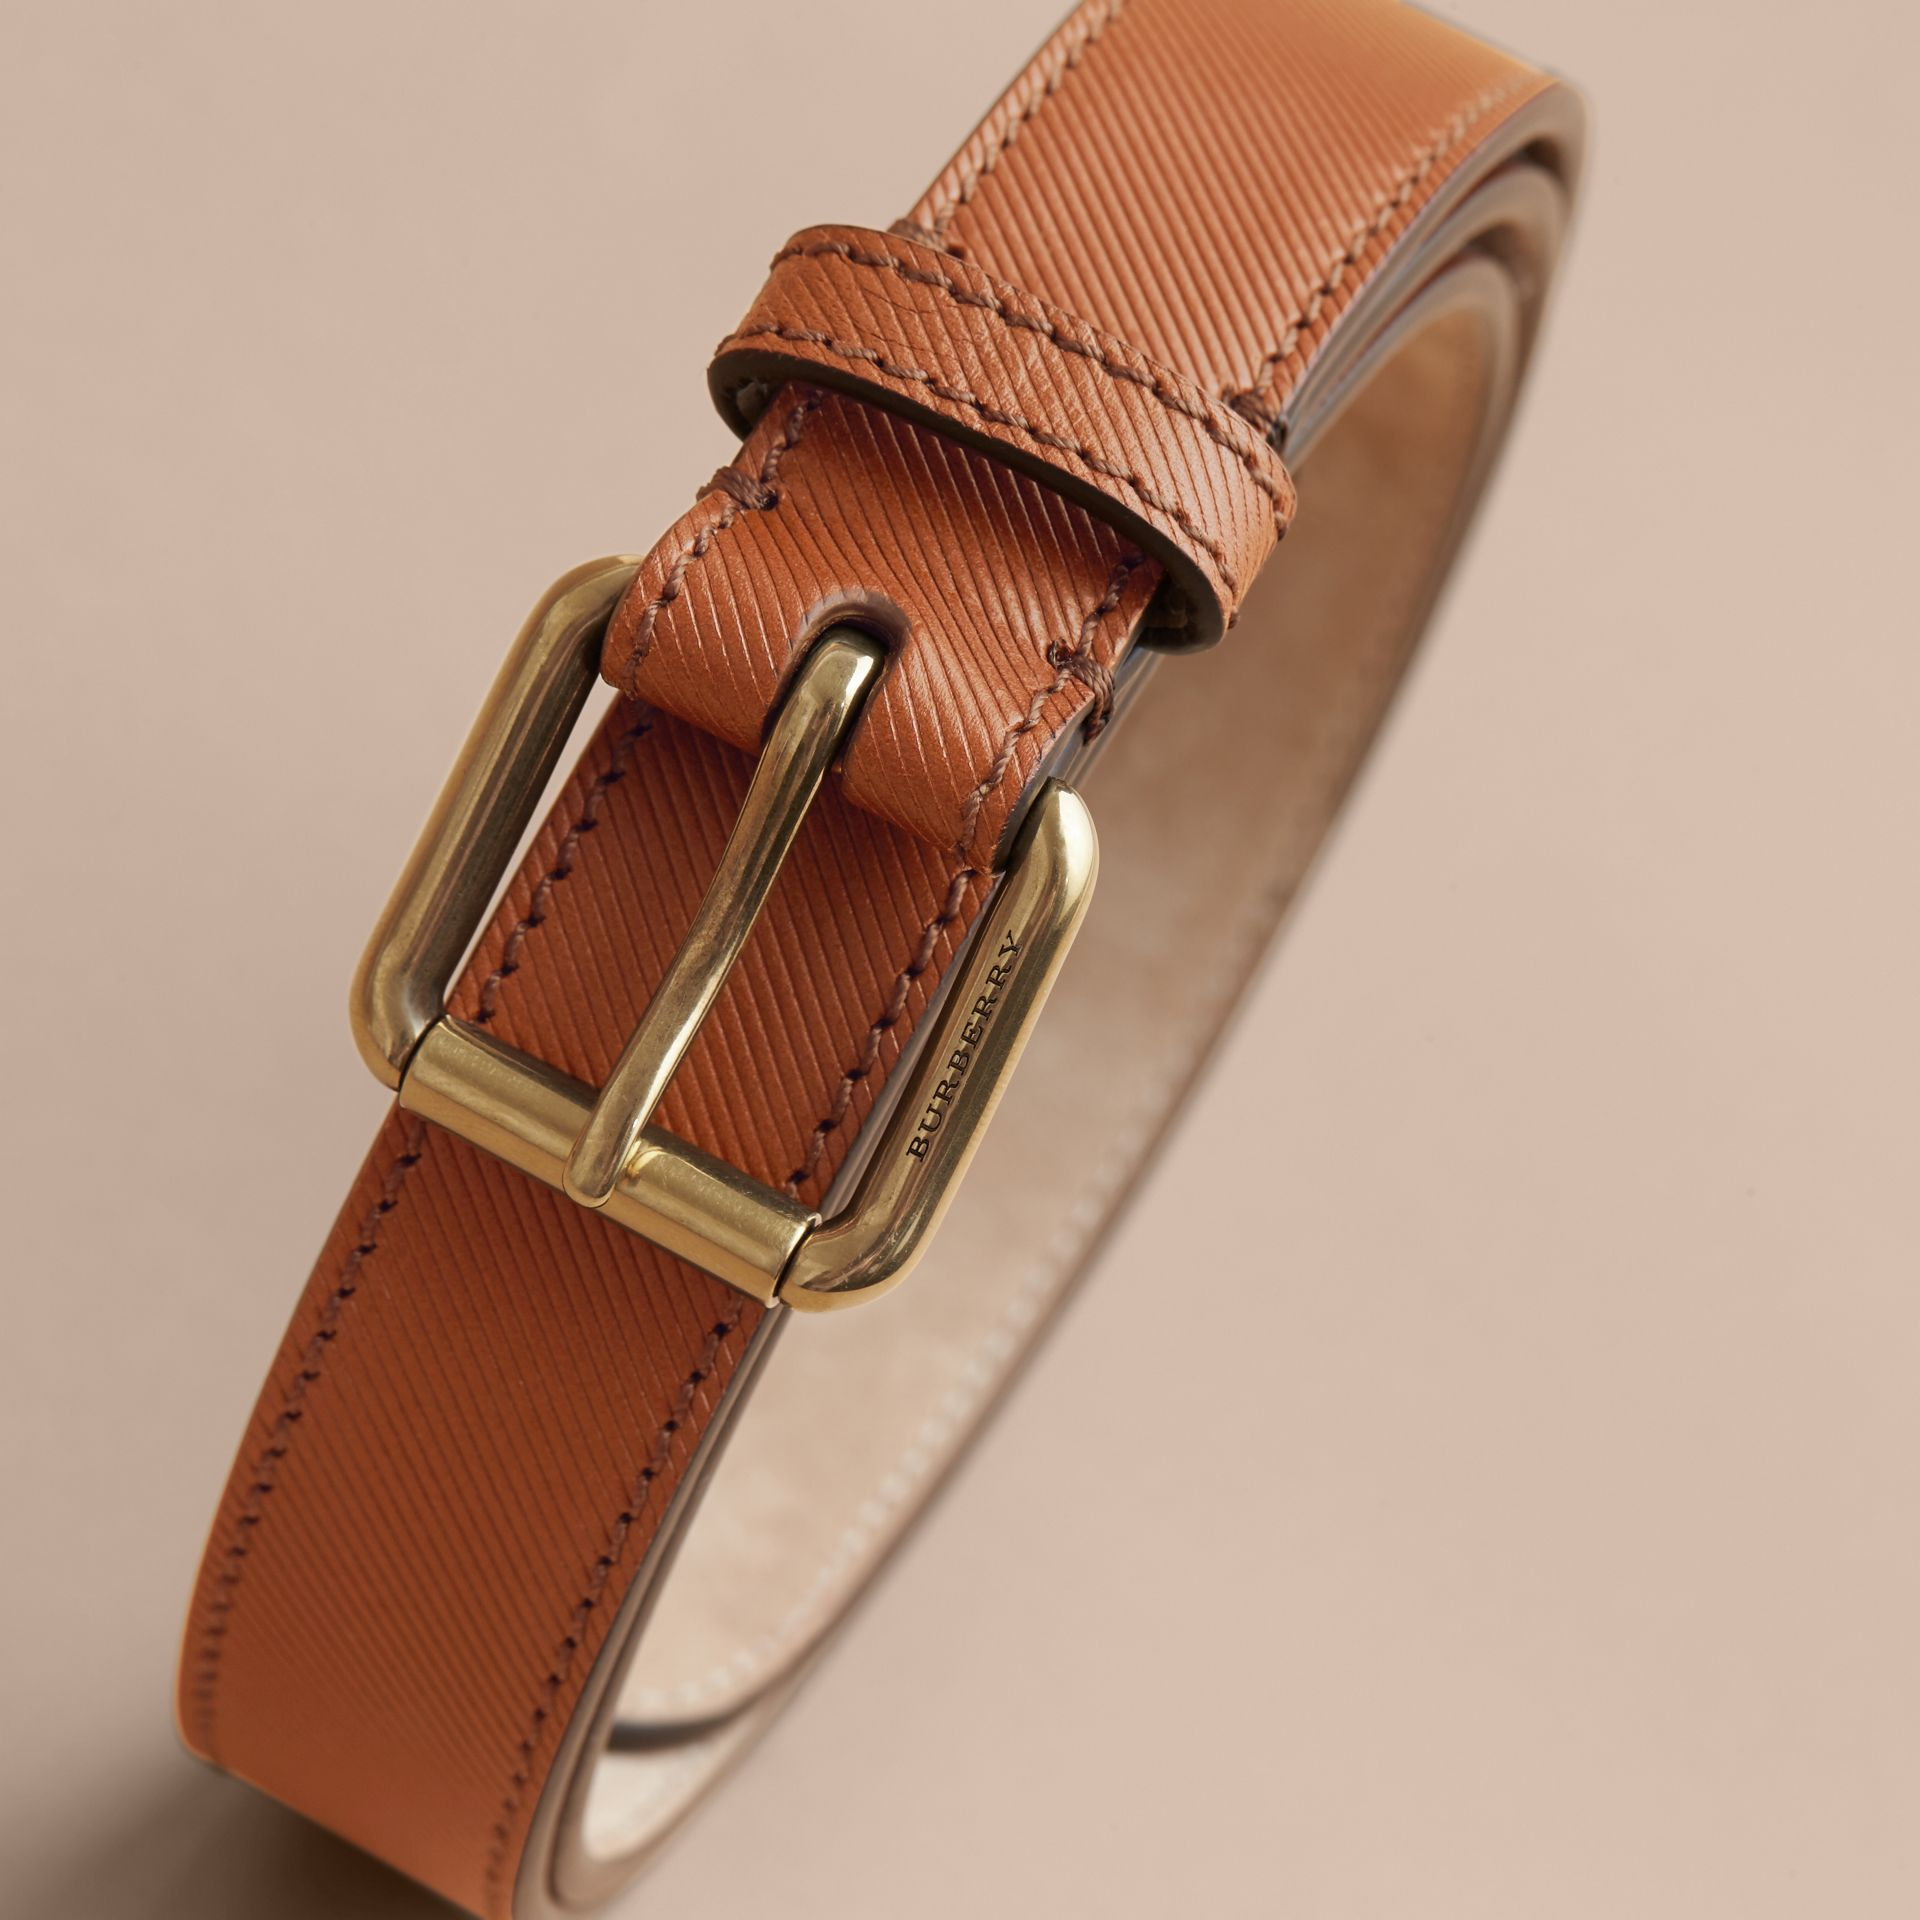 Trench Leather Belt in Tan - Men | Burberry Canada - gallery image 4